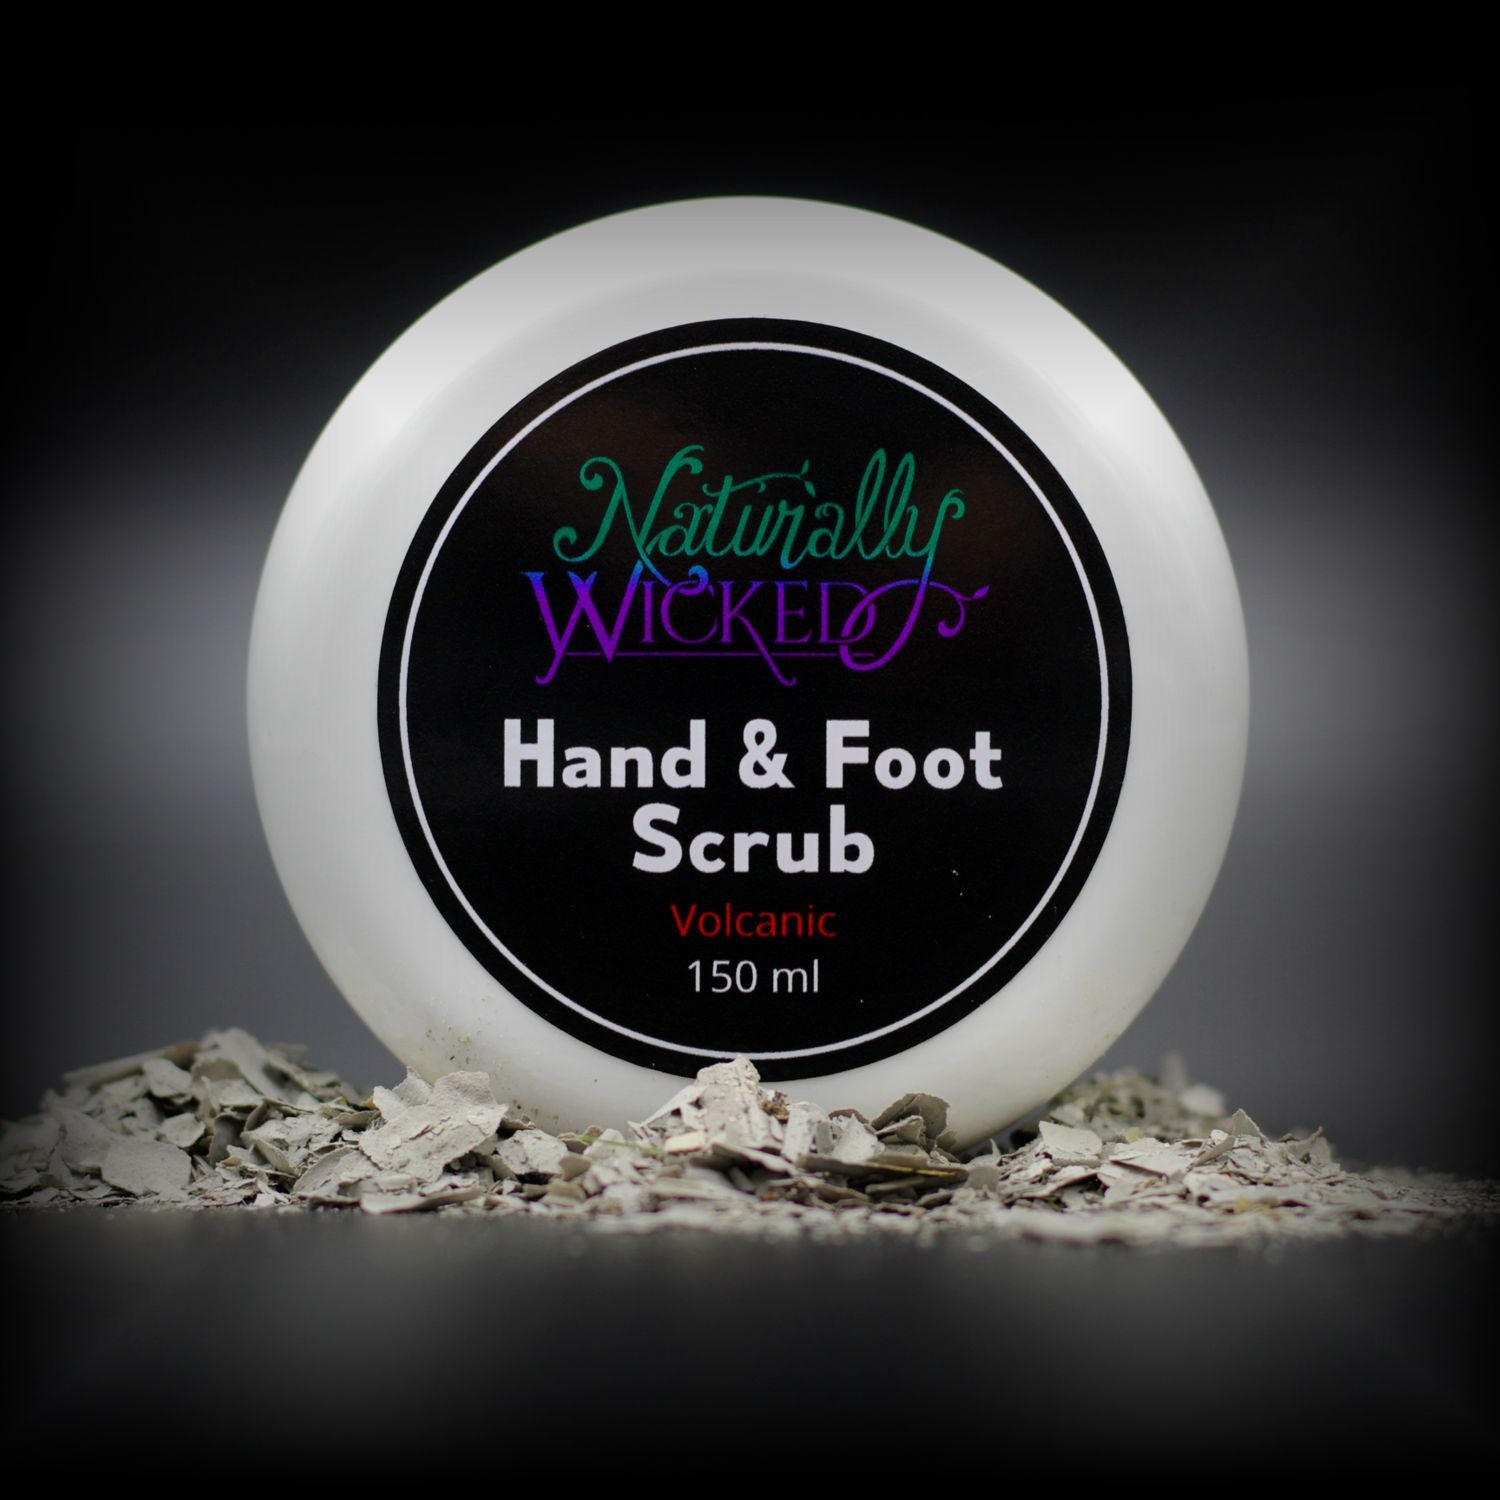 Naturally Wicked Volcanic Hand & Foot Scrub Lid In White Volcanic Ash